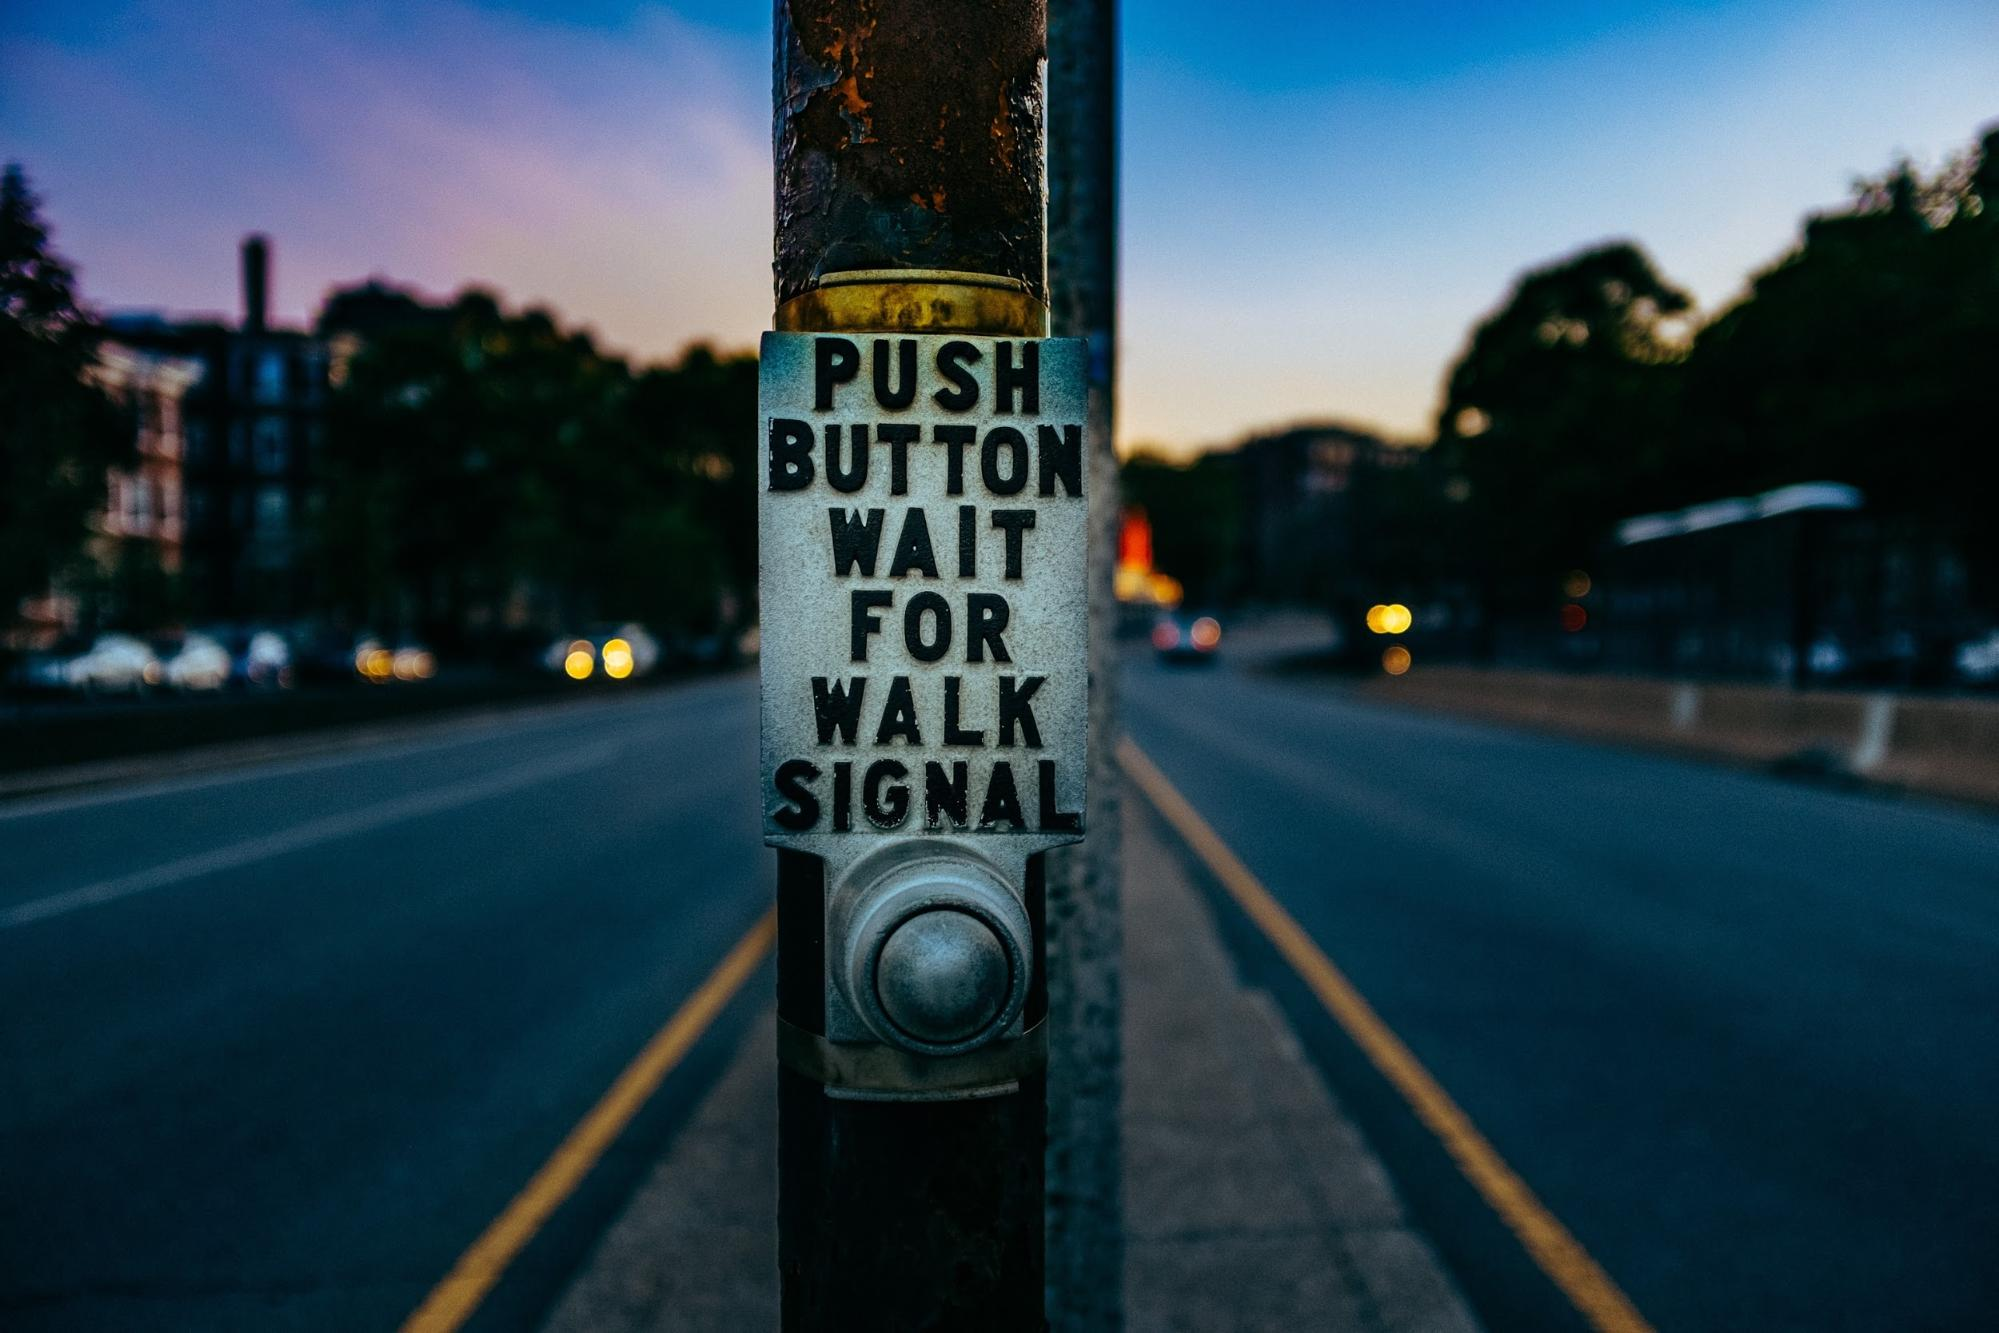 Walk signal button